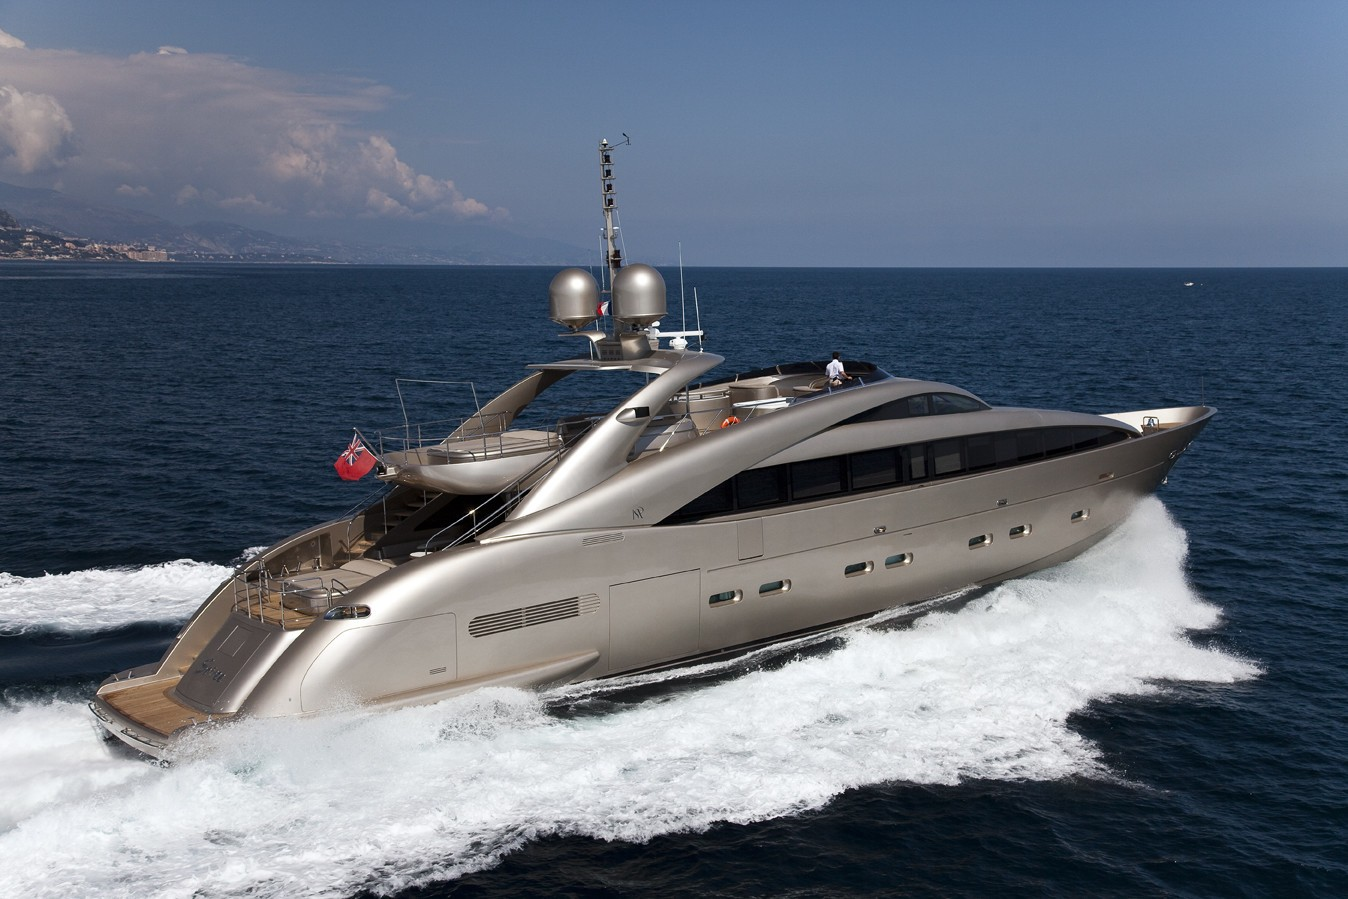 The 37m Yacht SOIREE